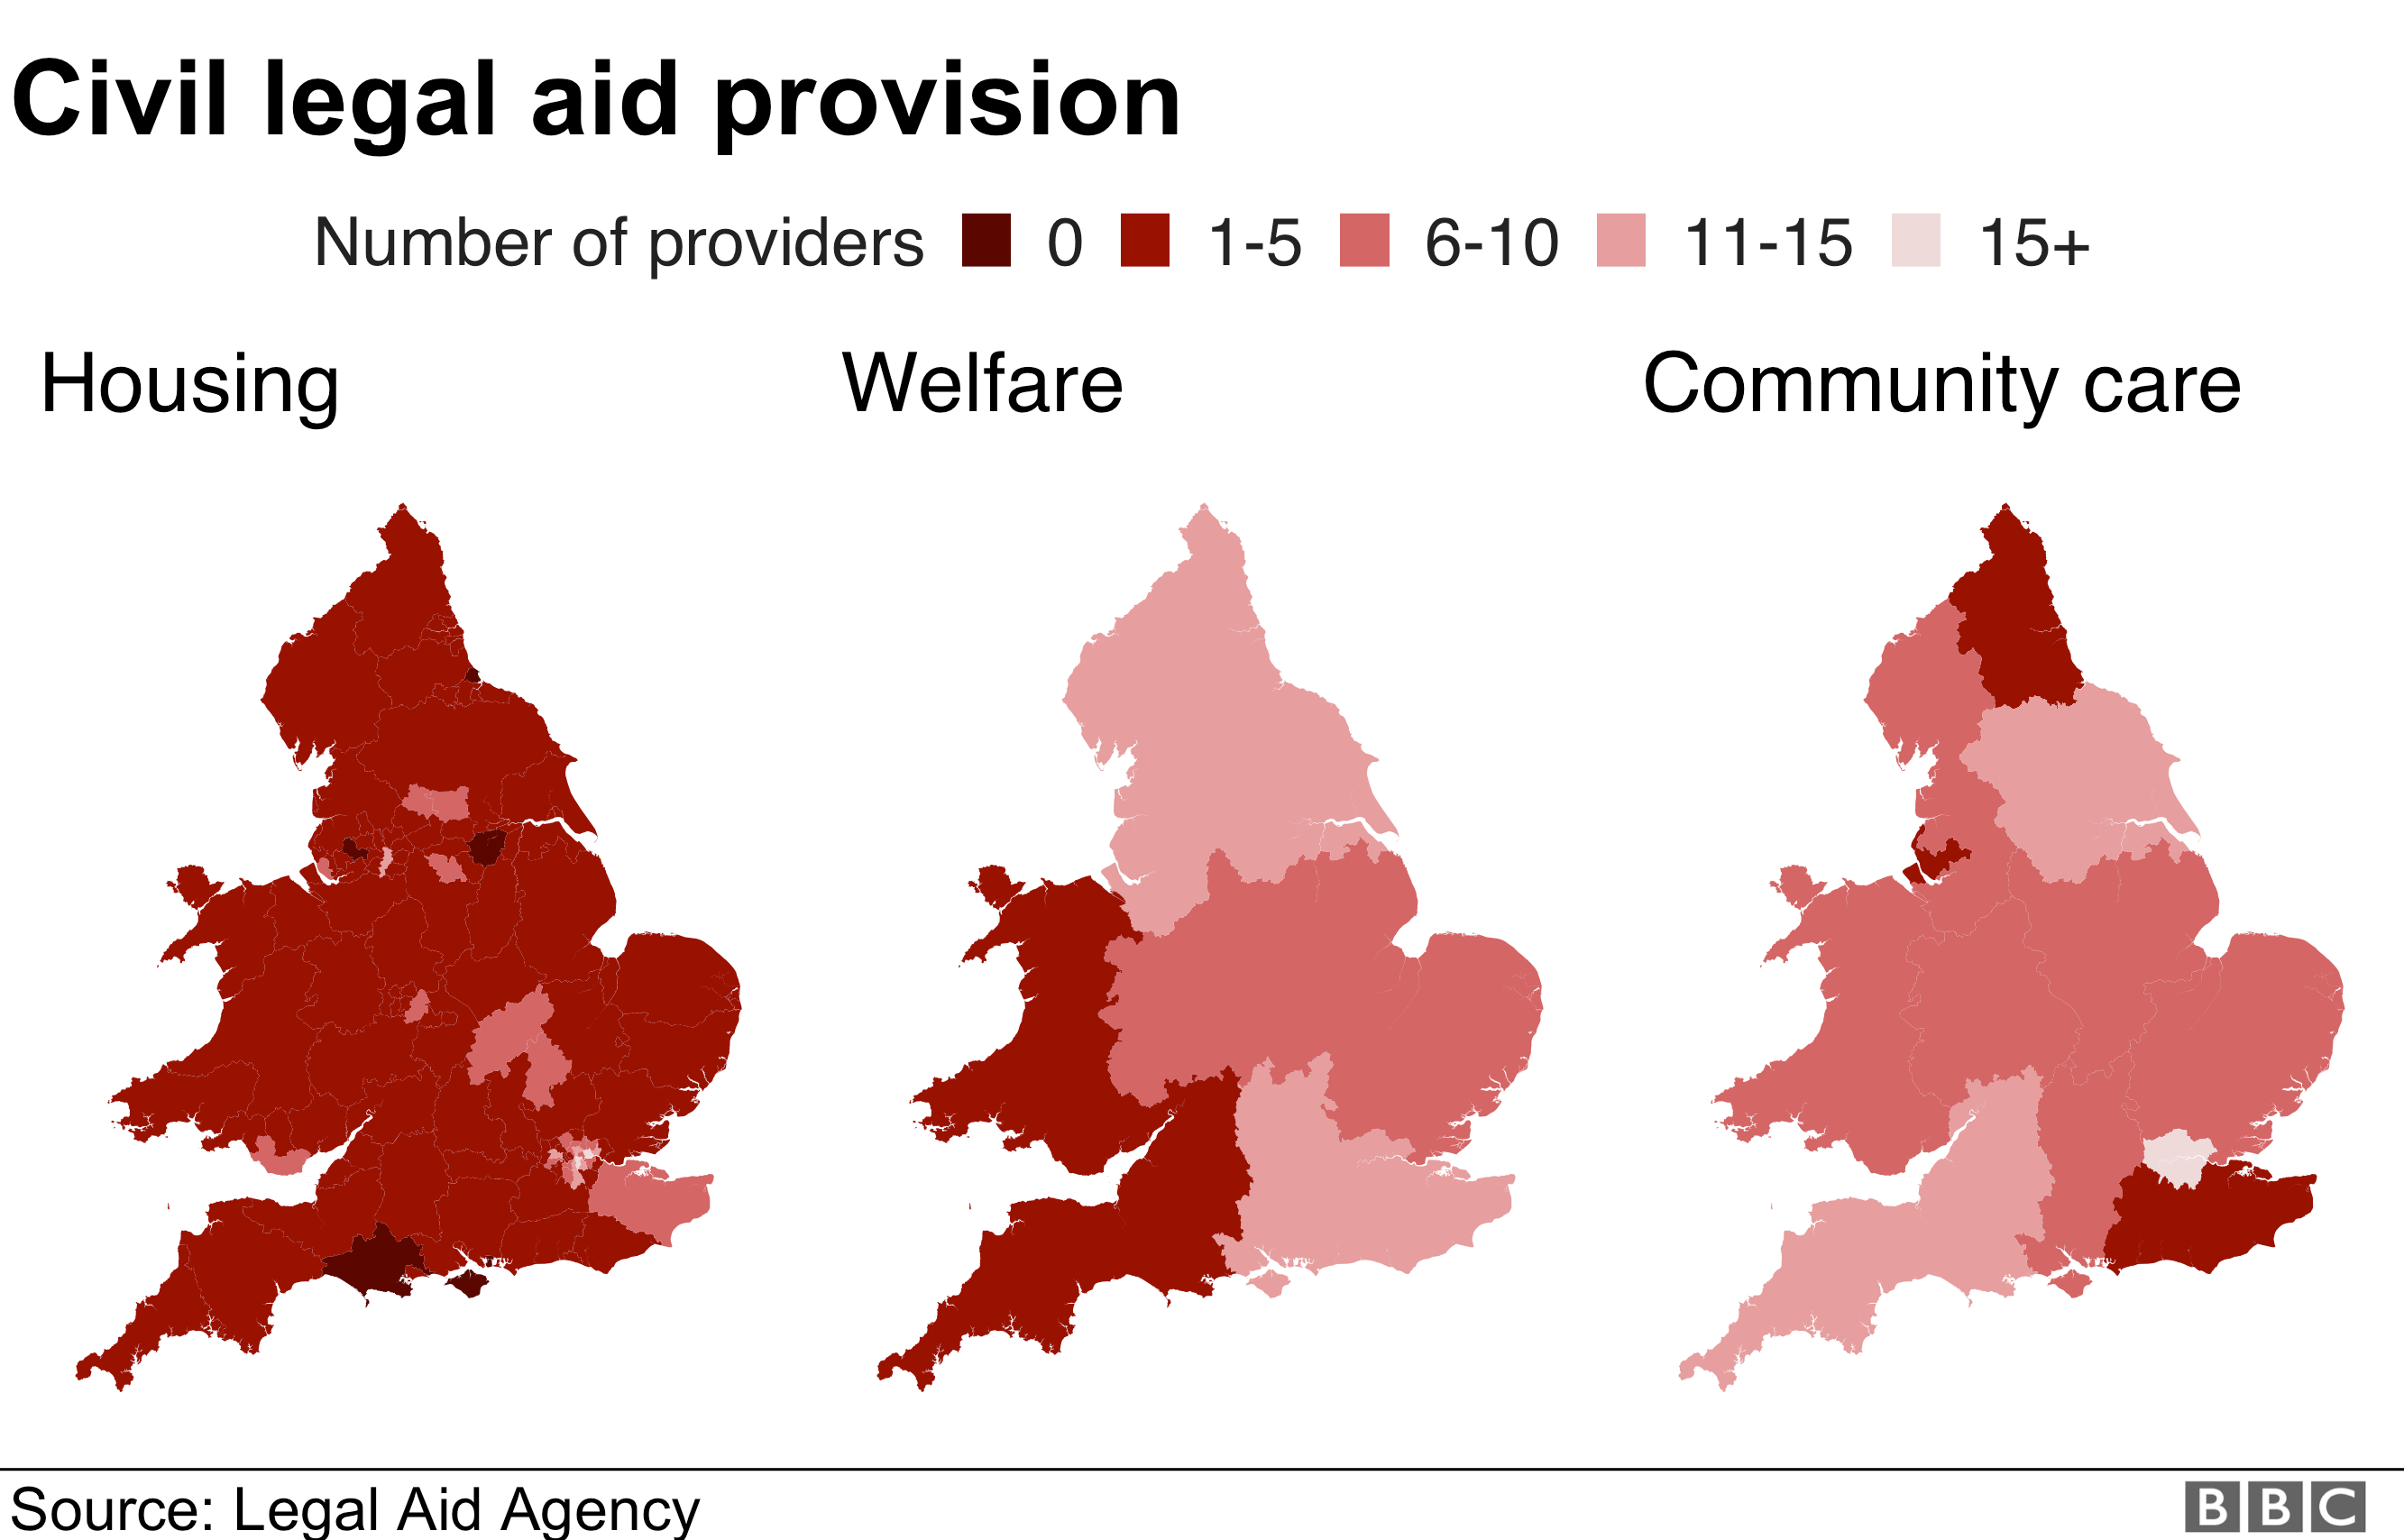 Civil legal aid provision in England and Wales